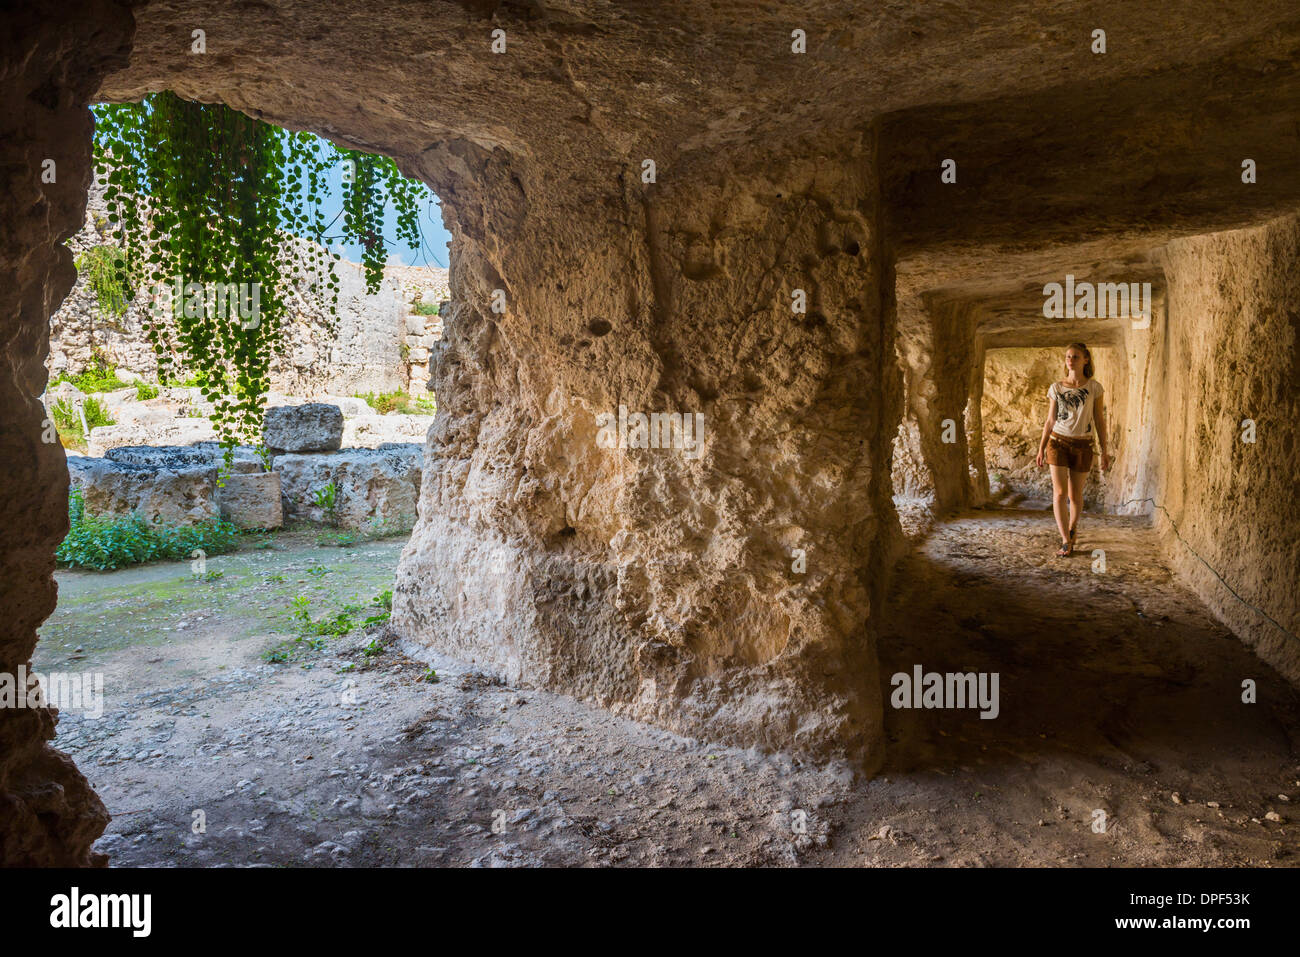 Tourist exploring the tunnels at the Greek ruins, Eurialo Casle (Castello Eurialo), Syracuse (Siracusa), Sicily, Italy, Europe - Stock Image